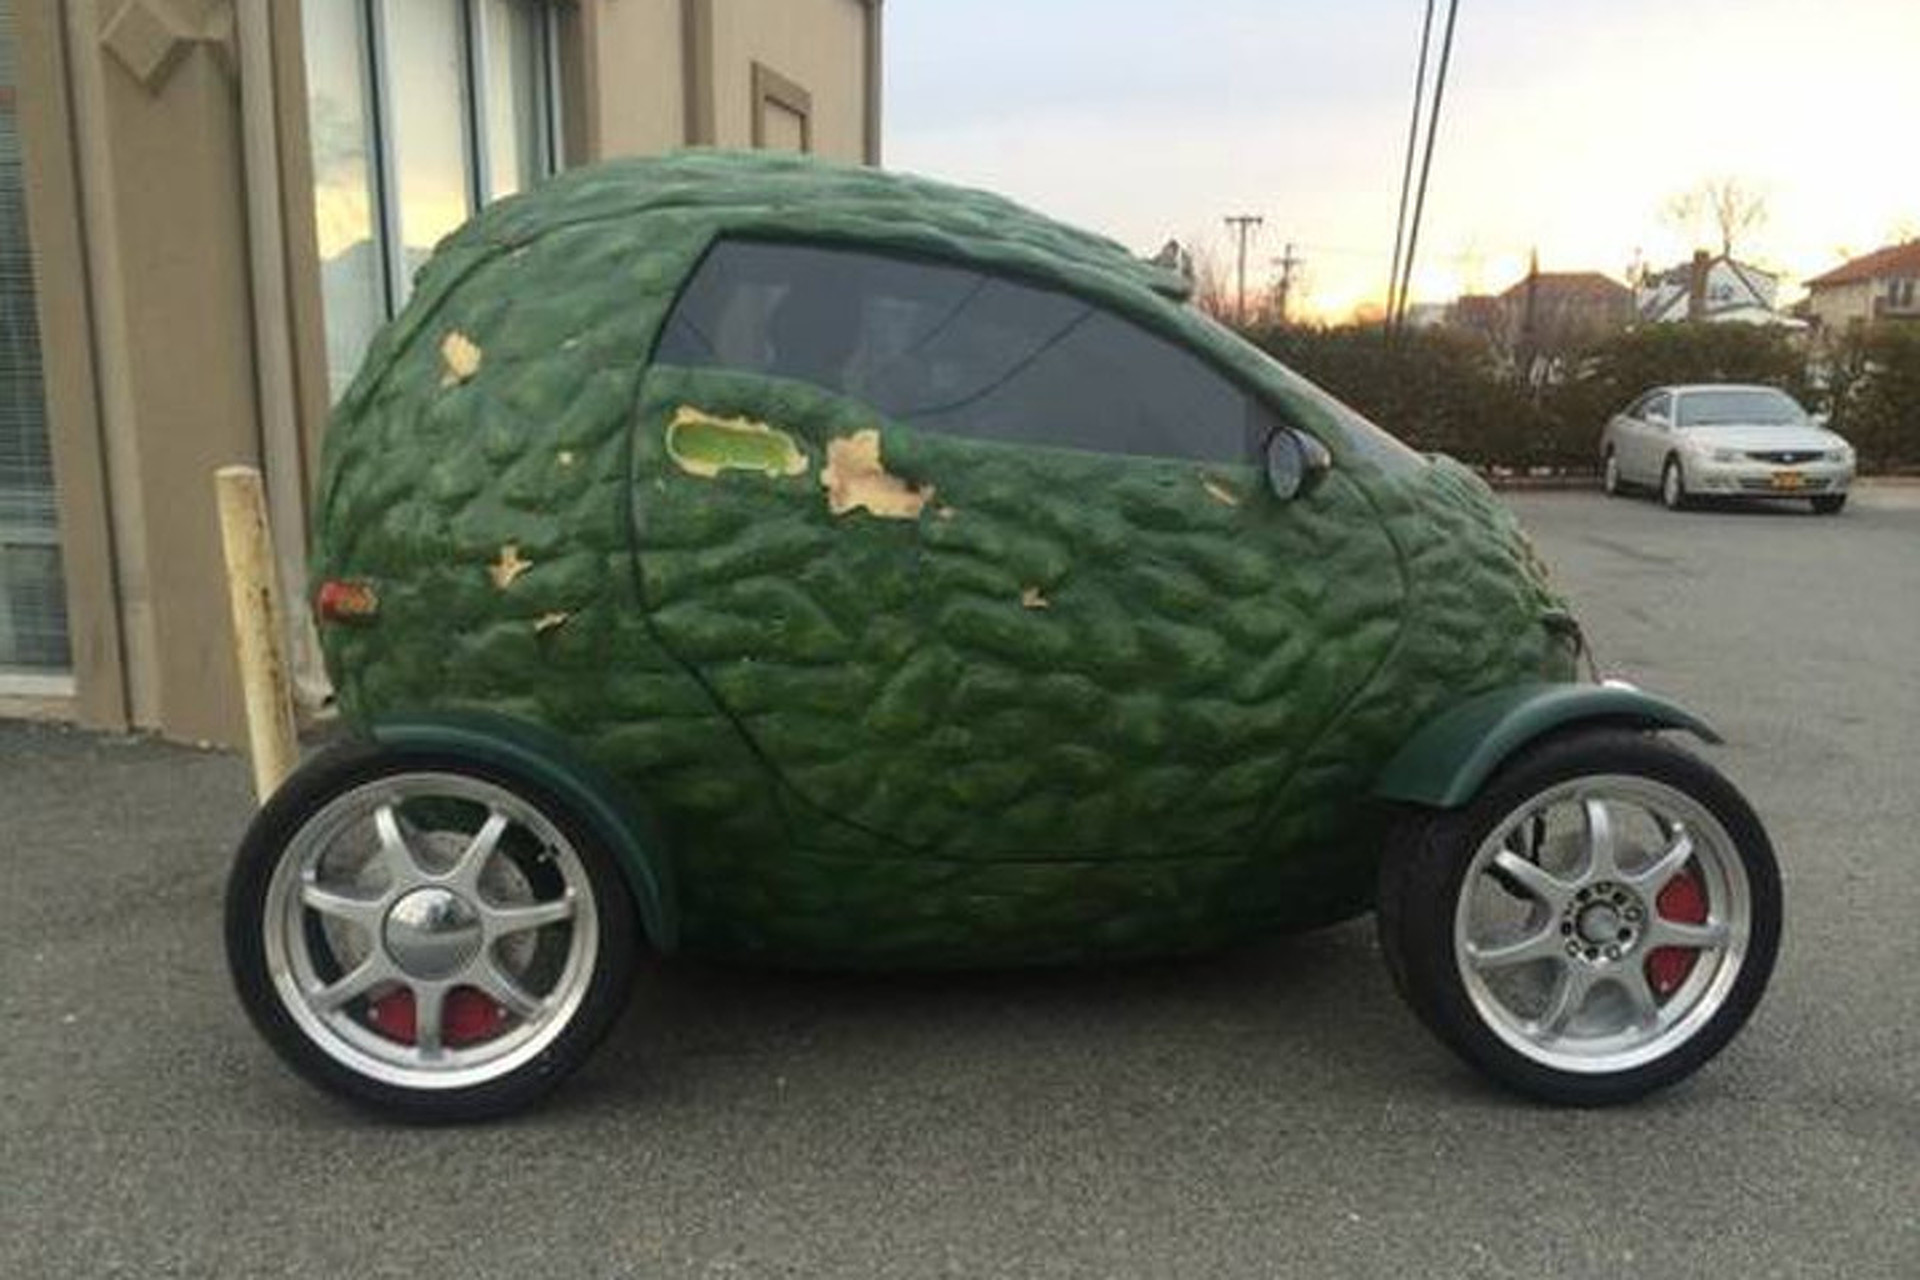 on Craigslist: Buy This Amazing Avocado Car!